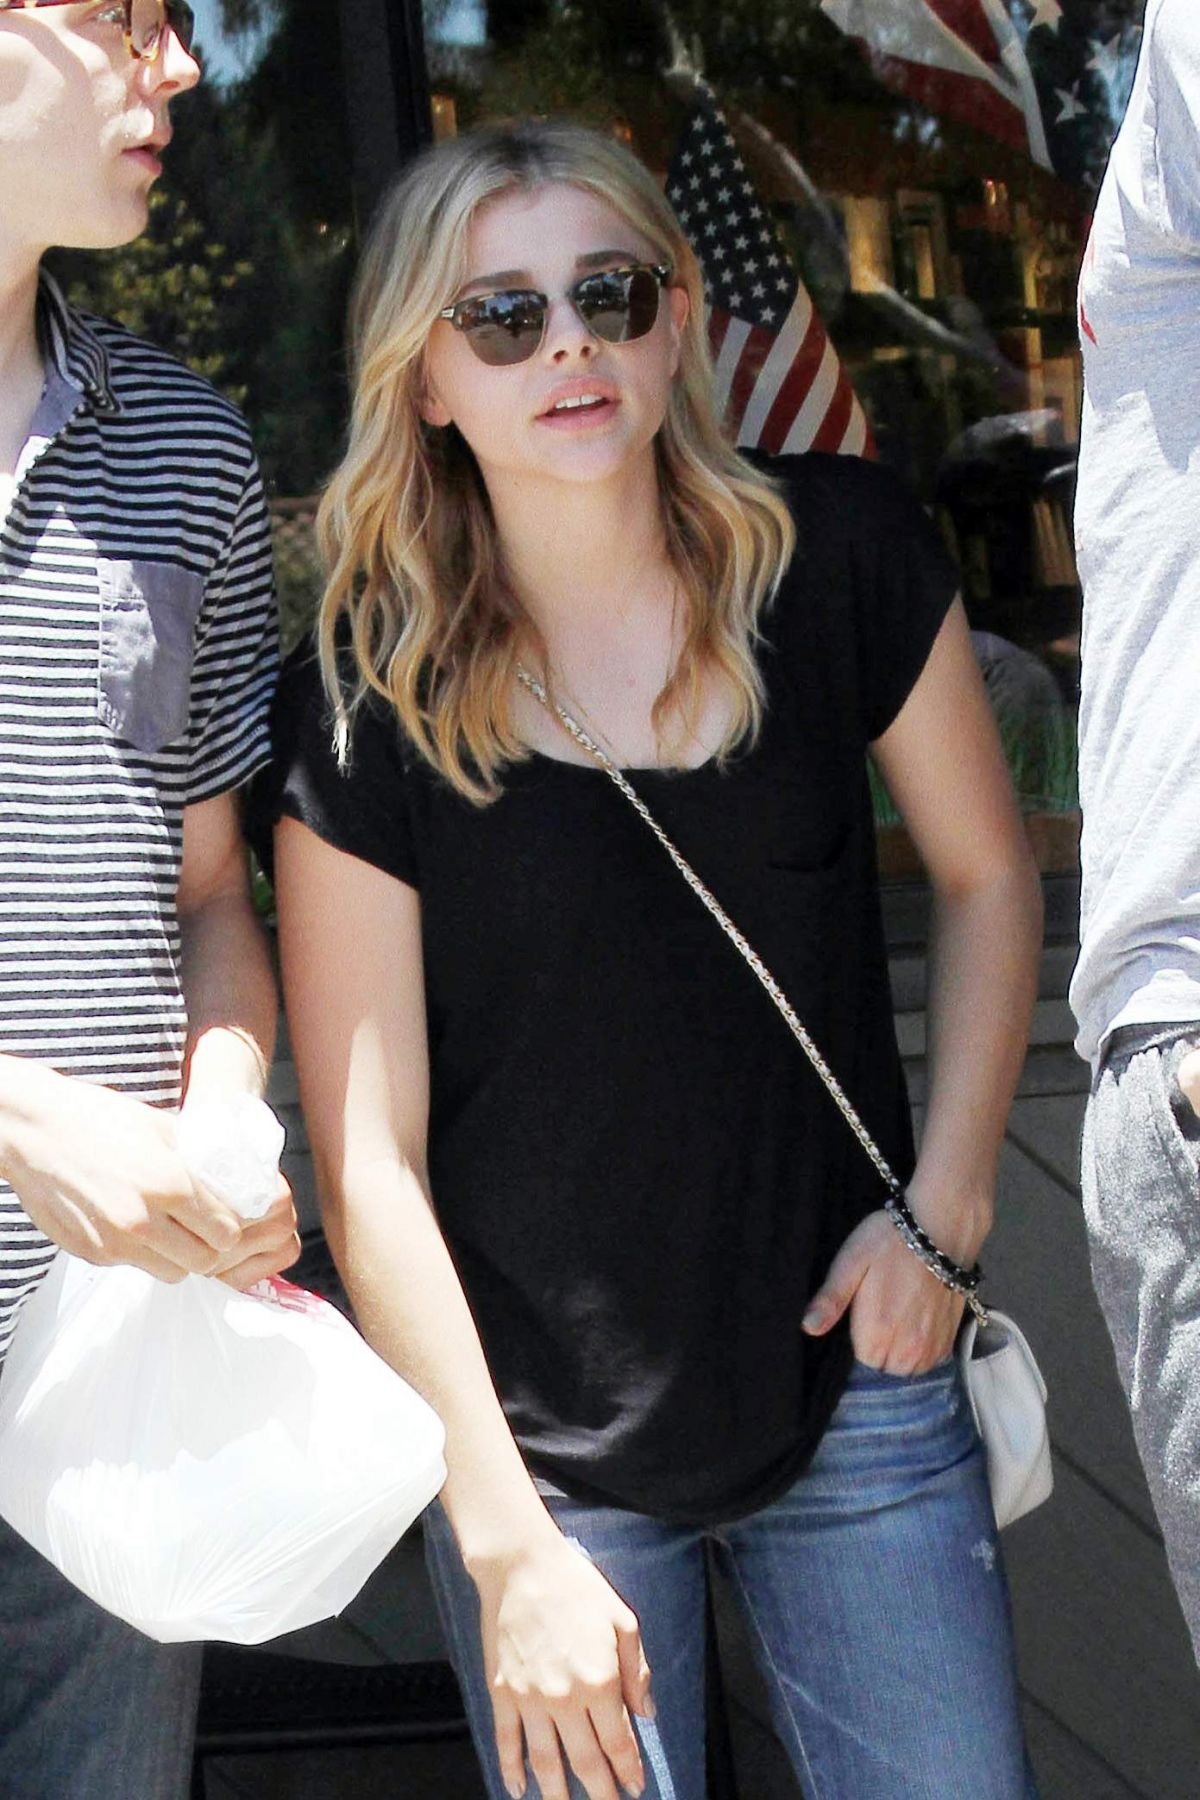 Chloe Moretz Out And About In LA